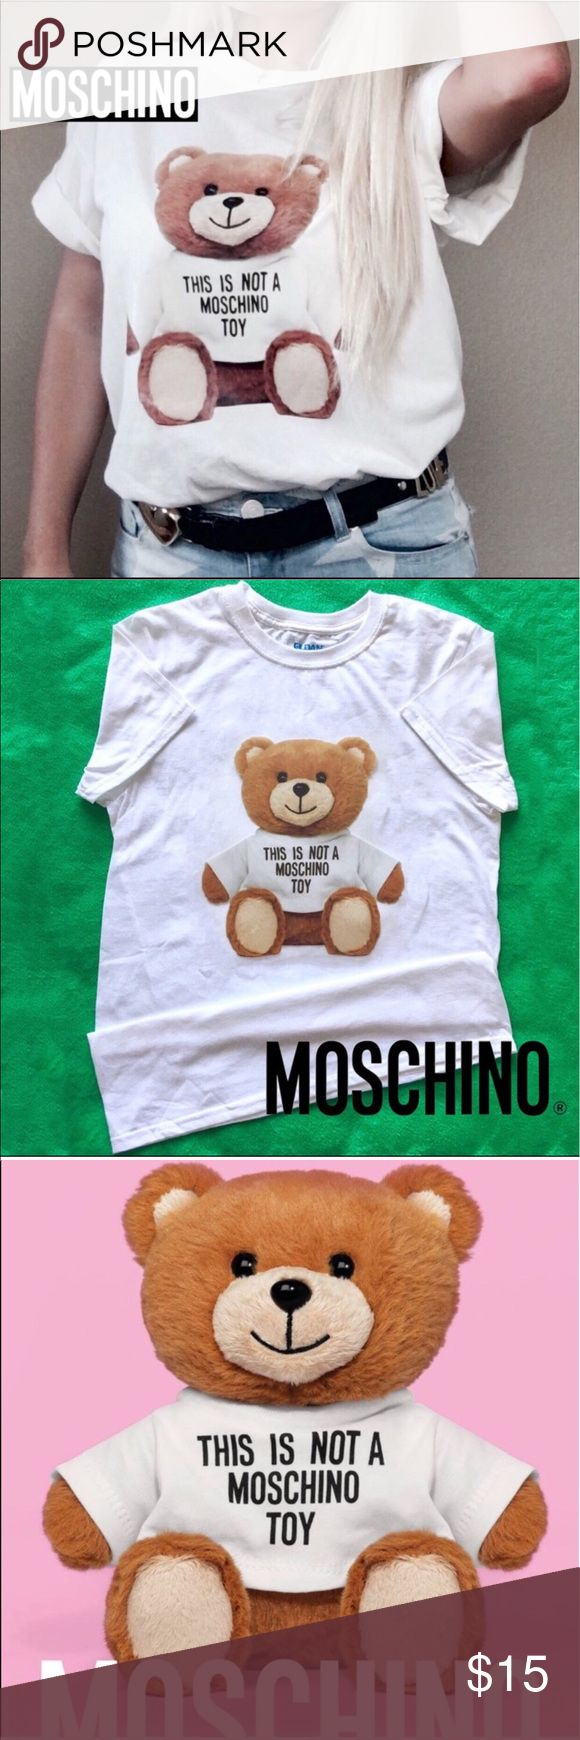 "‼️ALL TIME FAVORITE‼️🐻MOSCHINO® Tee🐻 🐻Moschino ® Toy Teddy T-Shirt🐻   Size: Moschino  MOSCHINO Teddy Bear t-shirt  Color: White Size: S (Loose style)   Realistic Large Teddy Bear ""THIS IS NOT A MOSCHINO TOY"" Brand New shirt!  